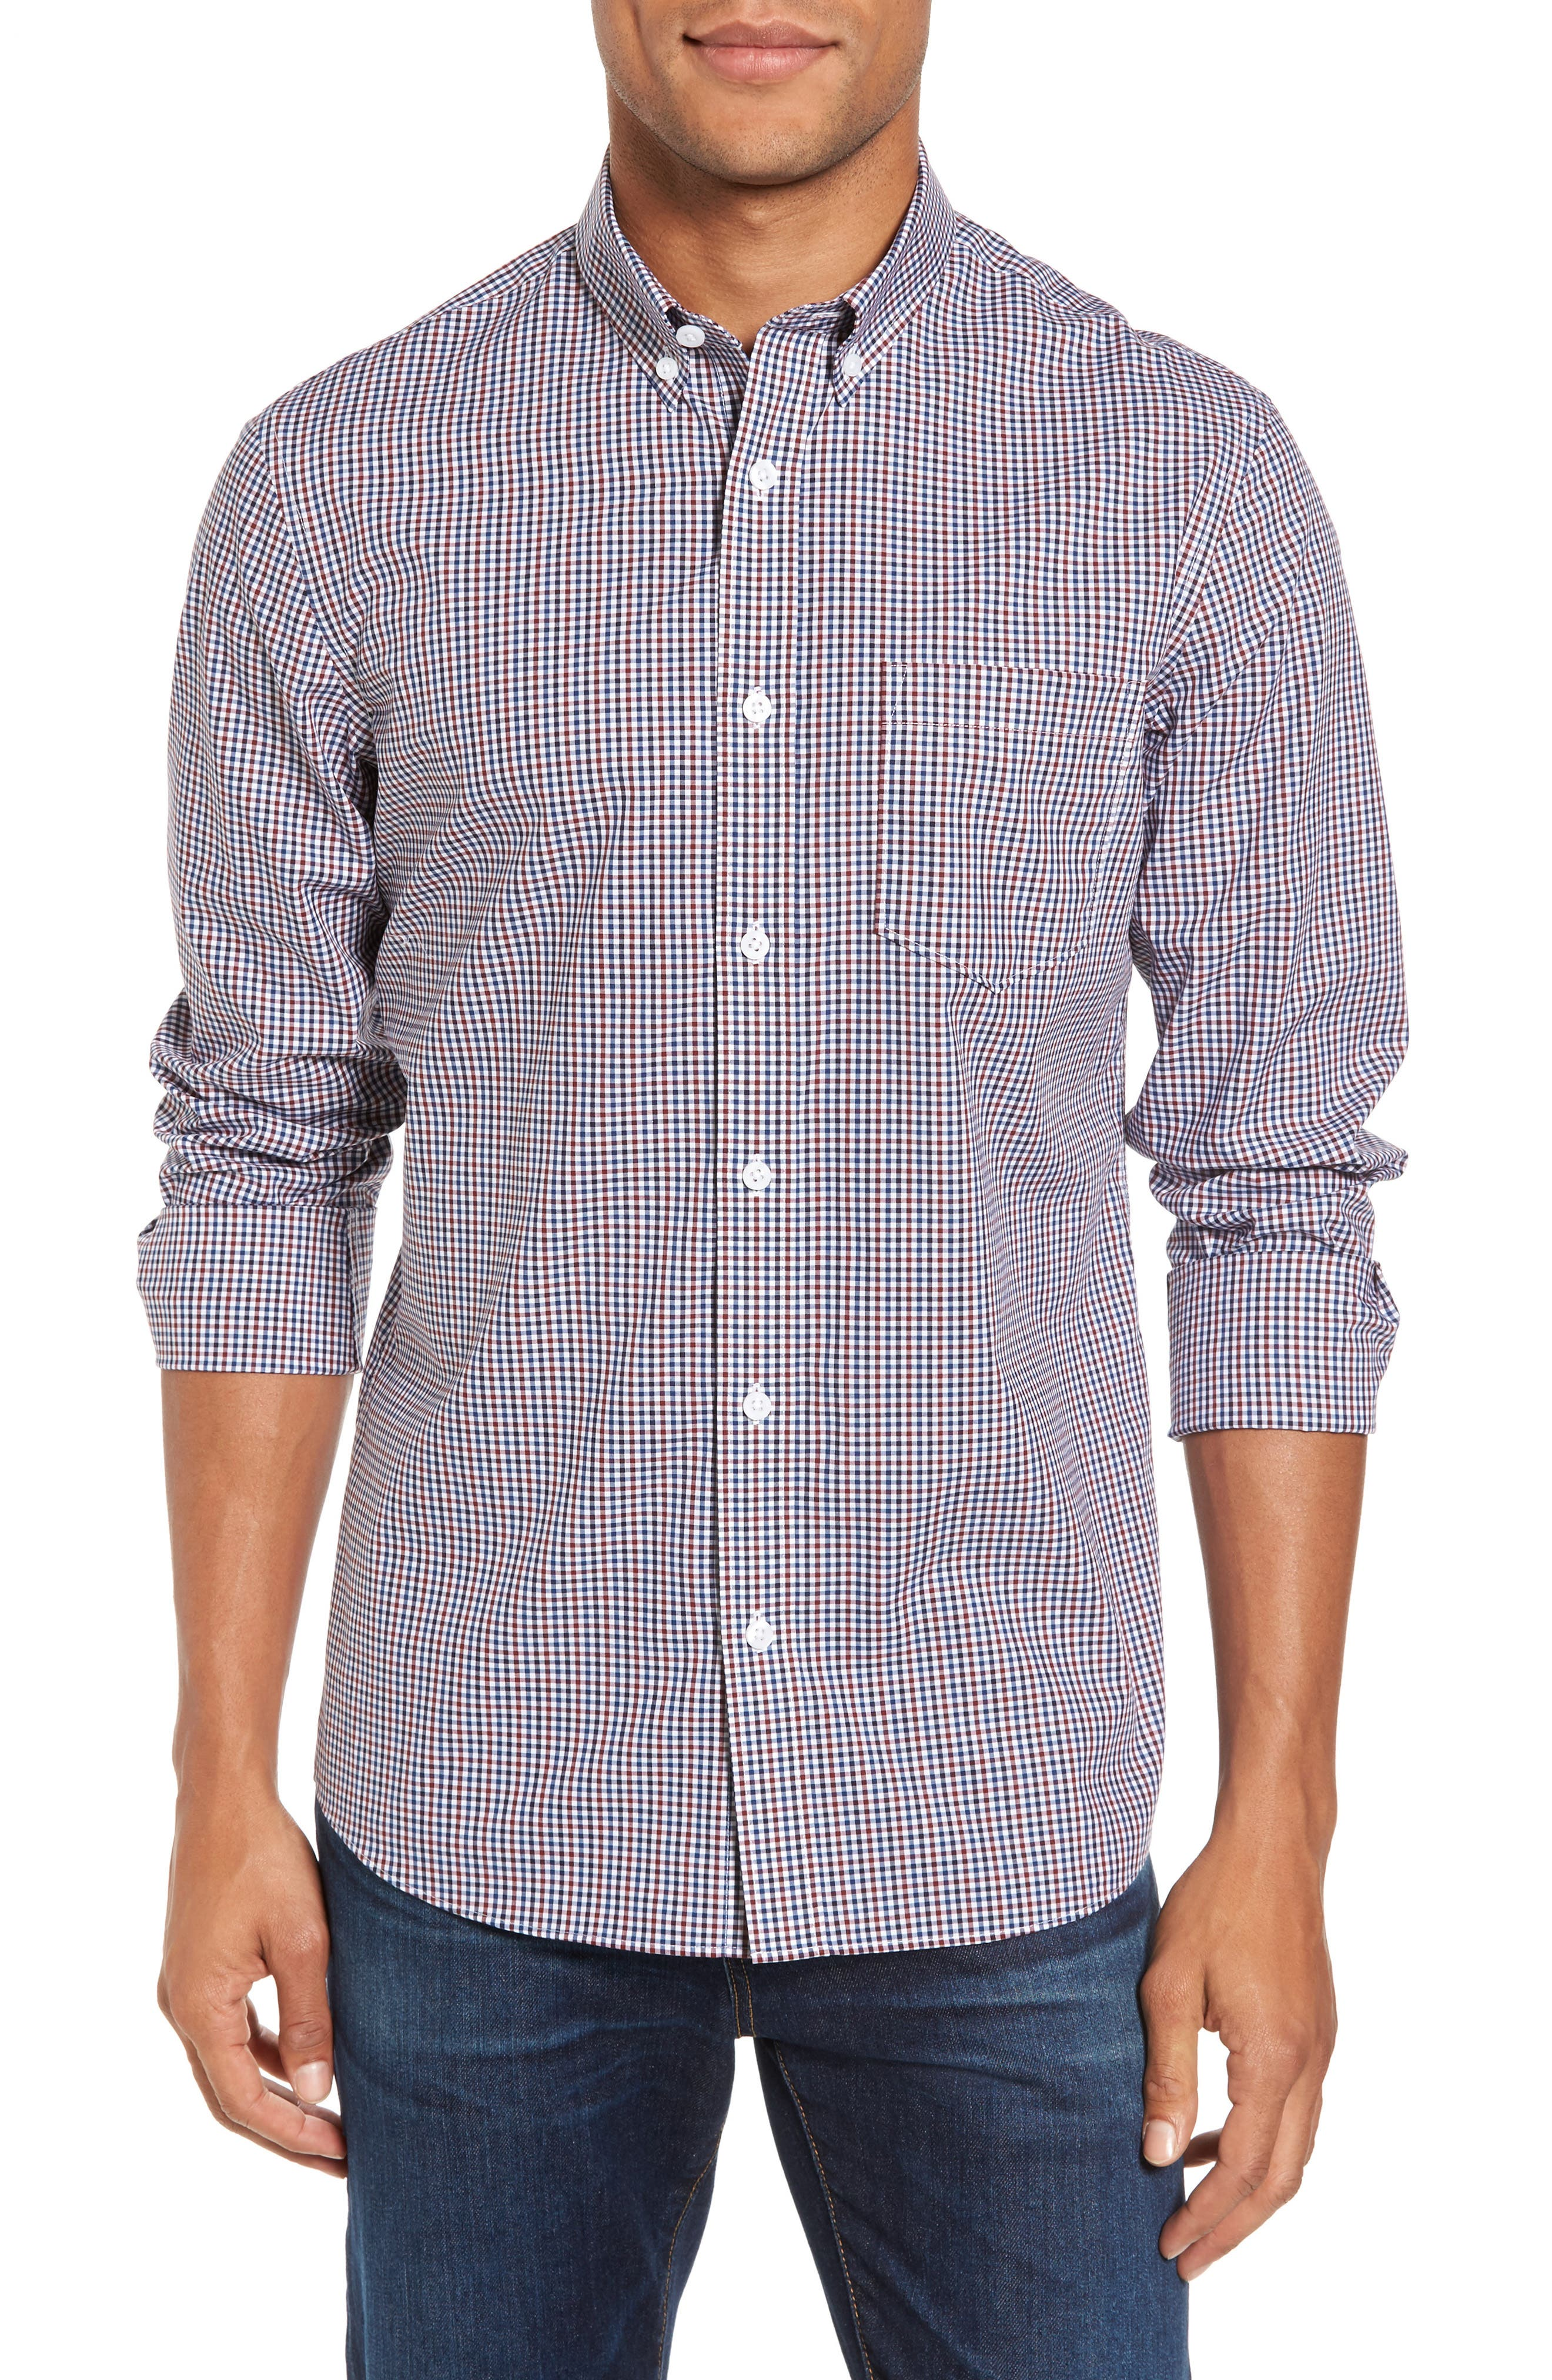 Alternate Image 1 Selected - Nordstrom Men's Shop Spade Trim Fit Non-Iron Mini Check Sport Shirt